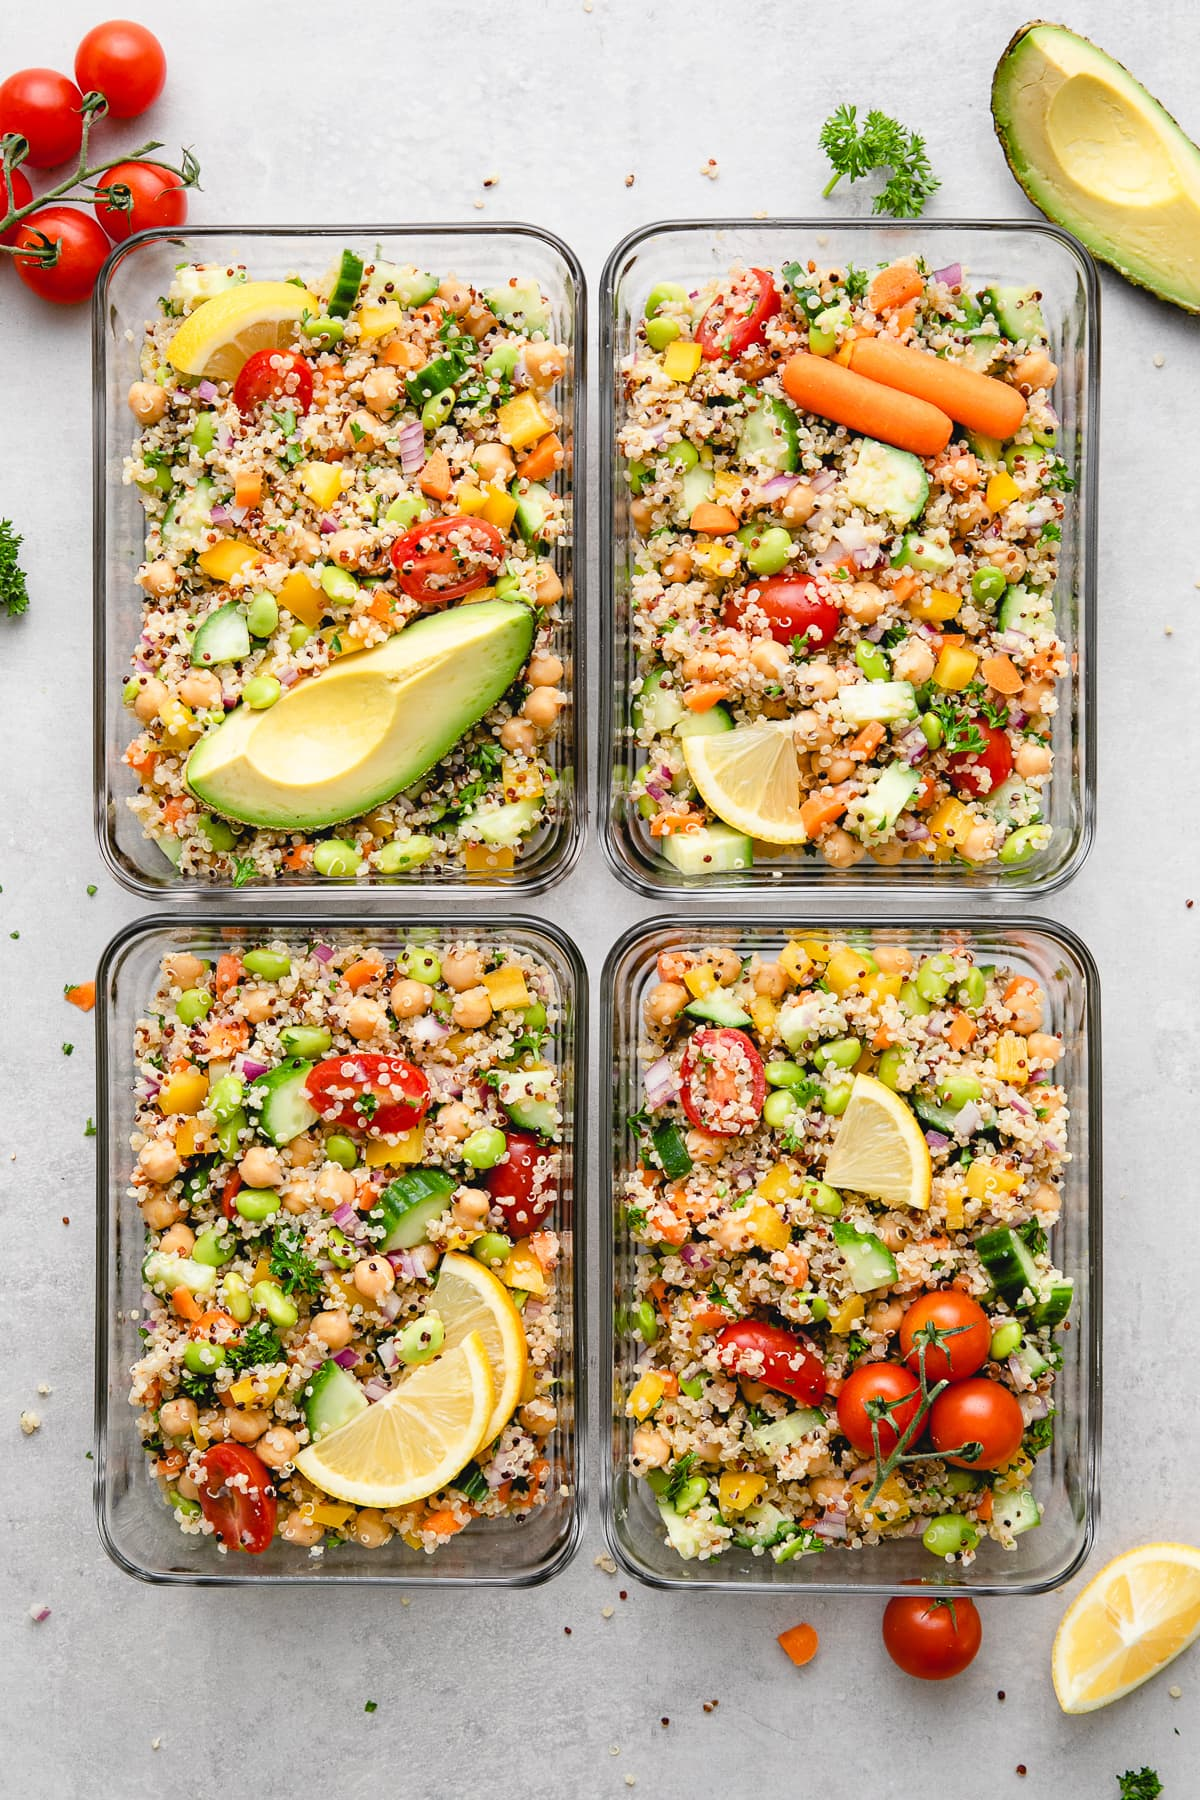 top down view of meal prepped vegan quinoa salad in glass containers.